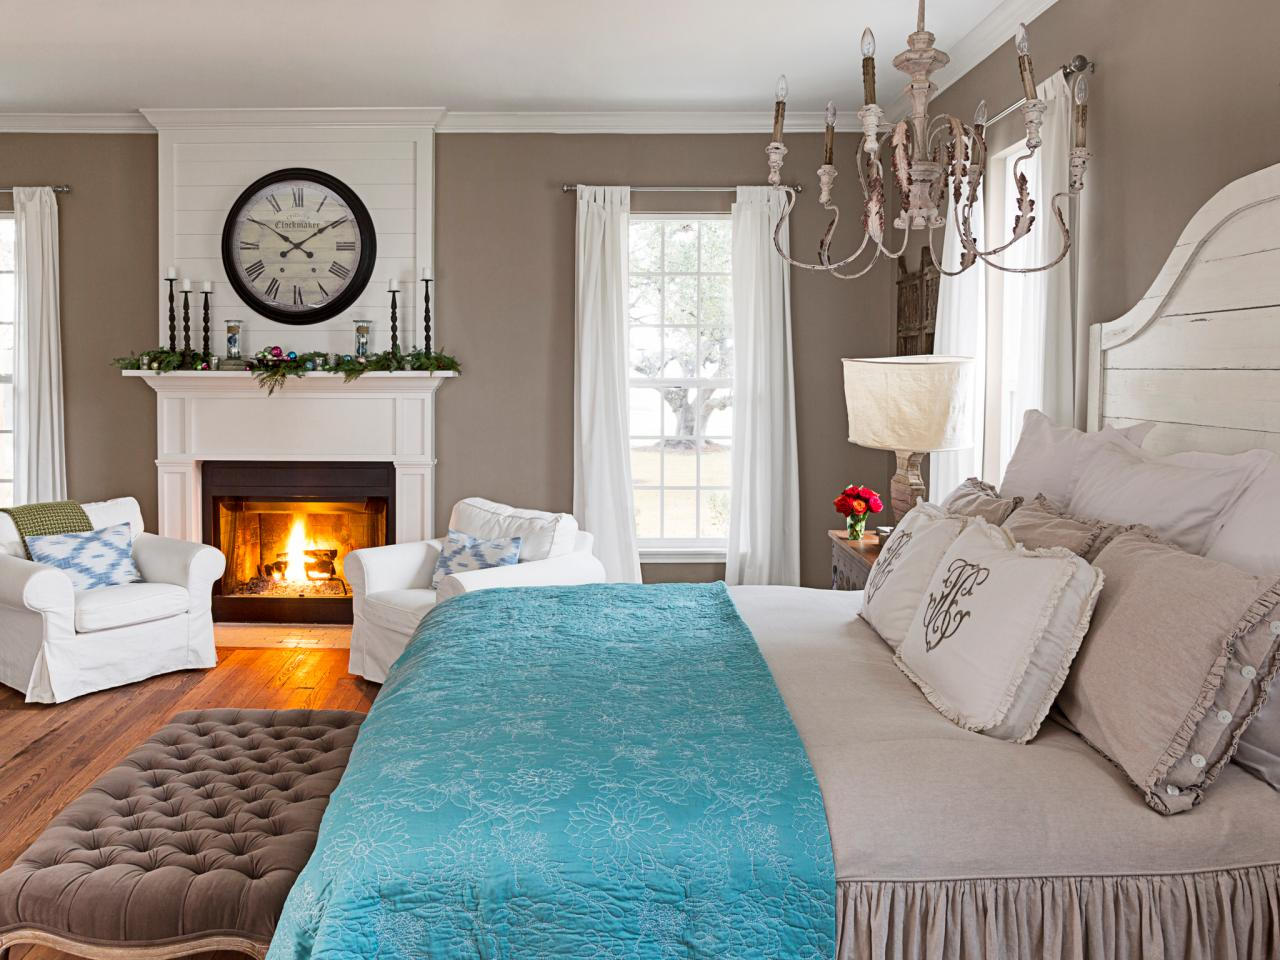 Fixer upper hosts chip and joanna gaines holiday house for Joanna gaines bedroom ideas